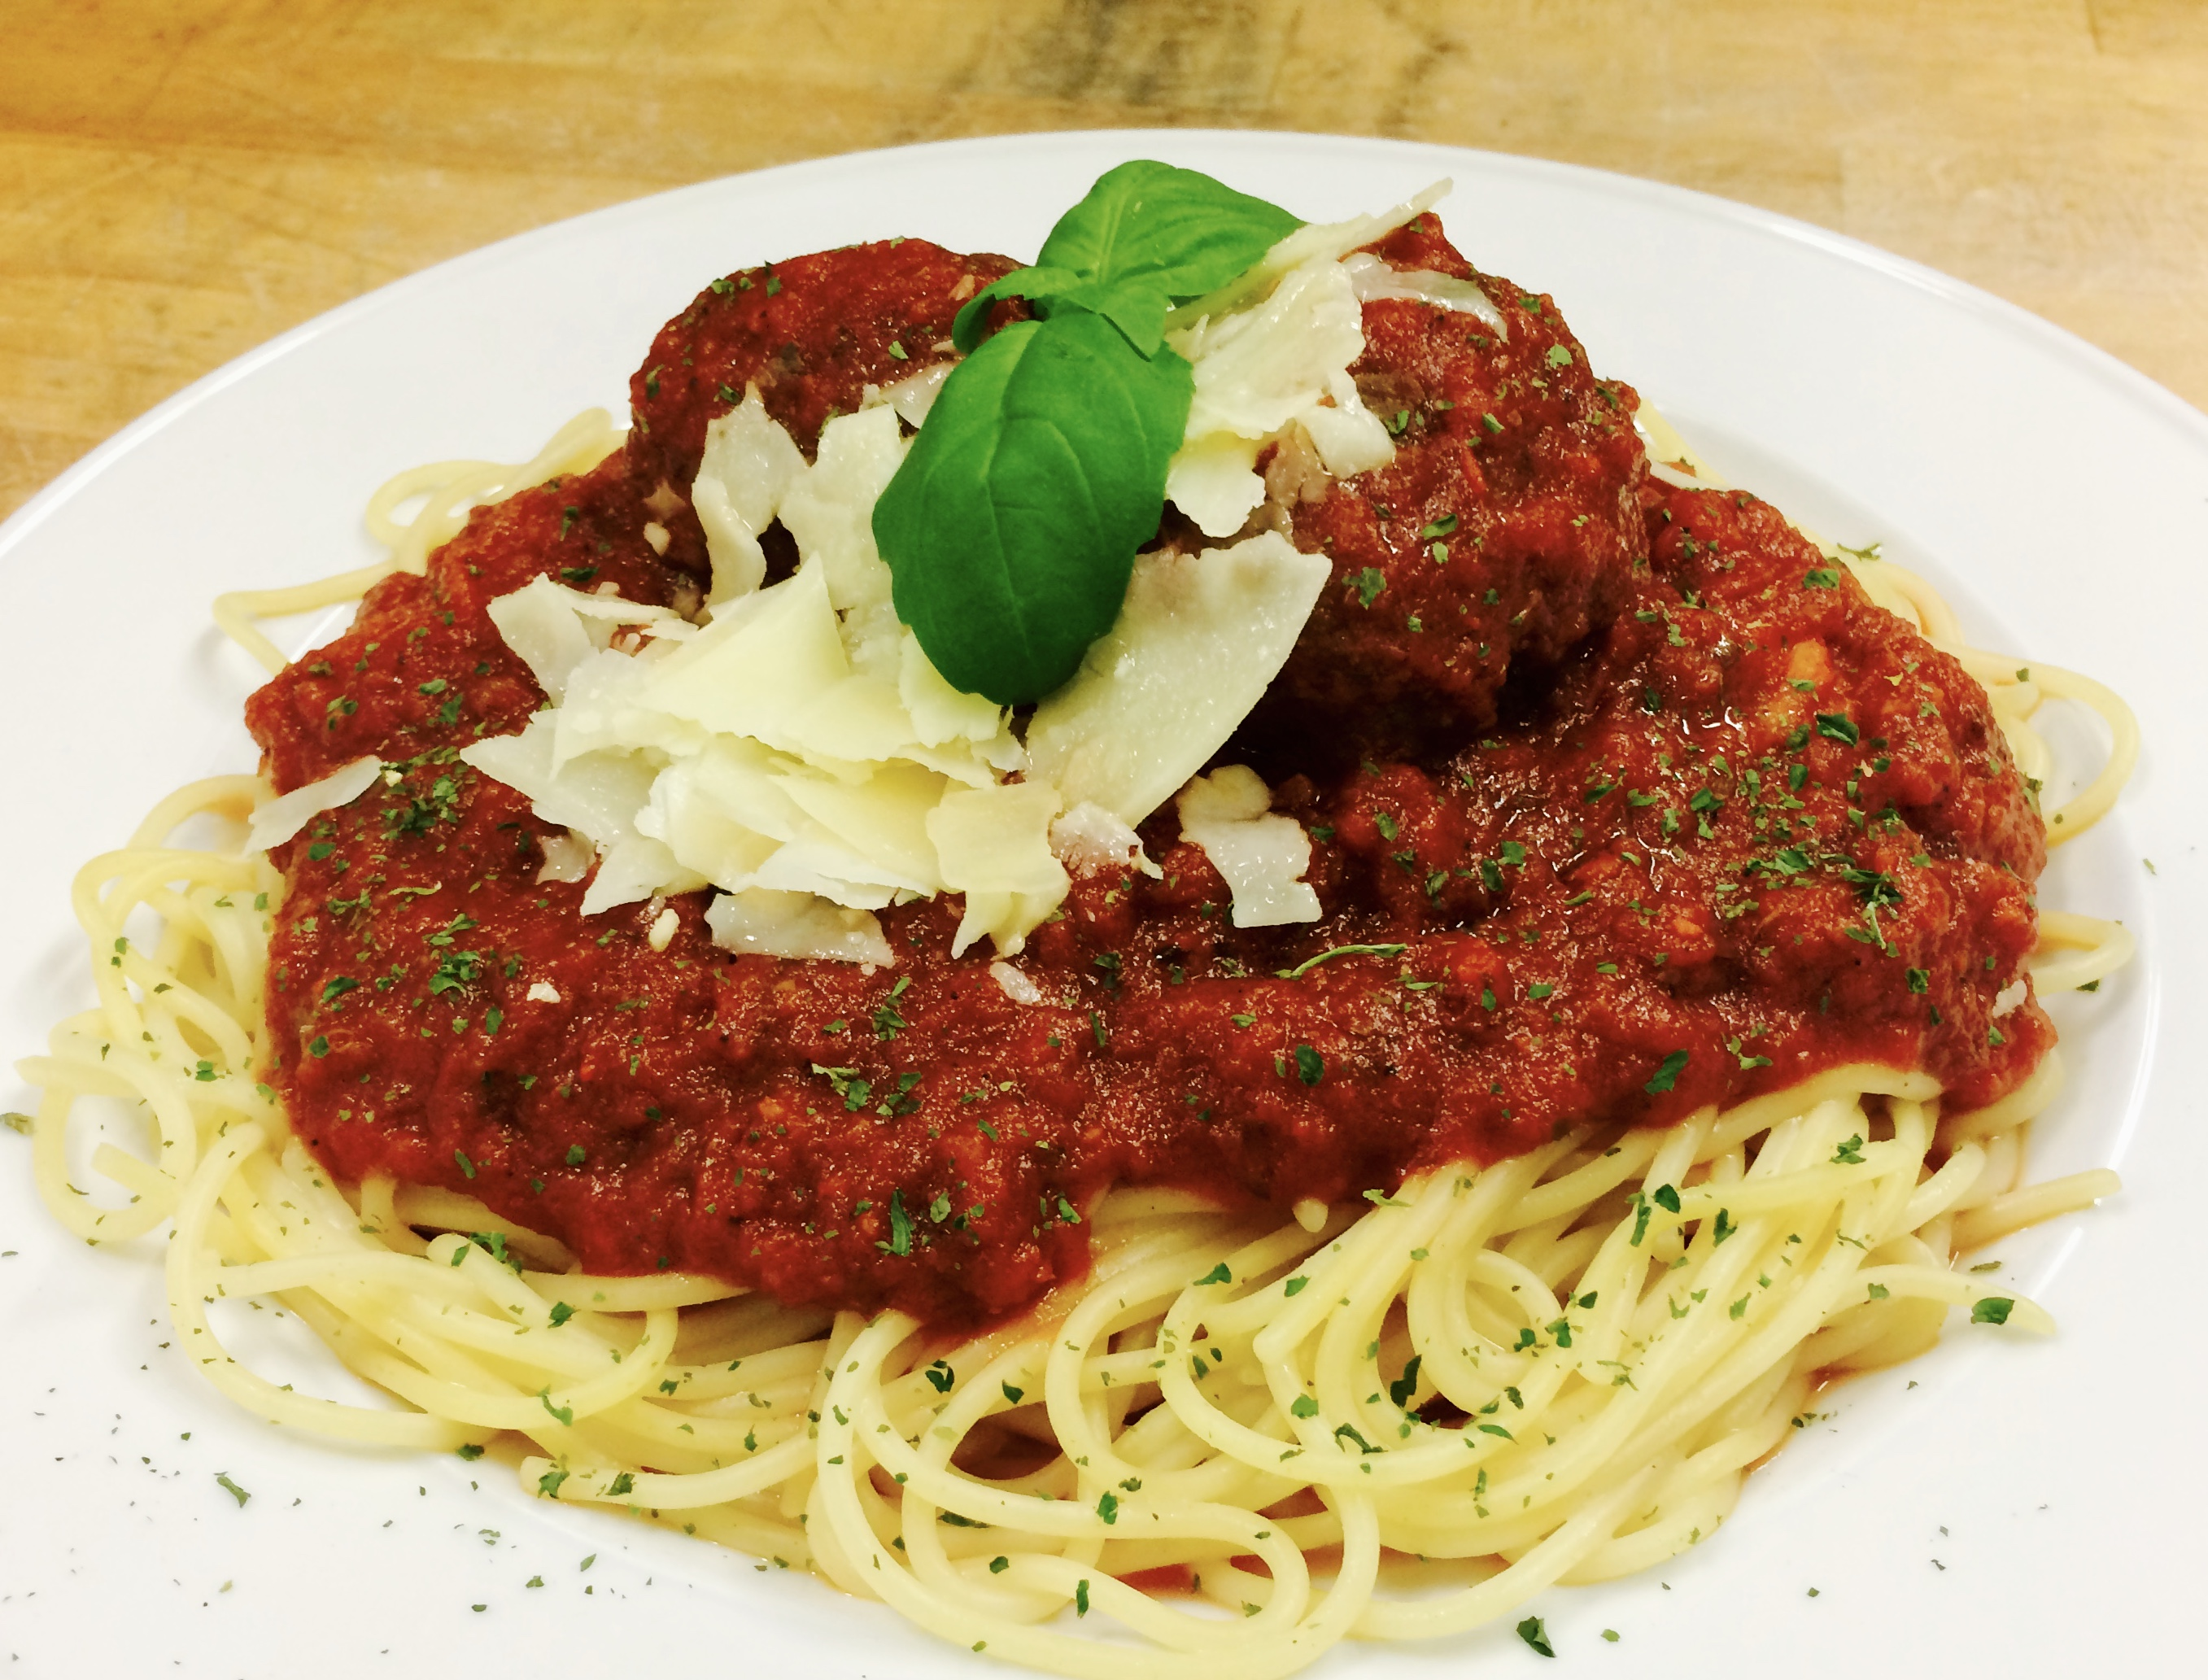 Spaghetti with red sauce on top